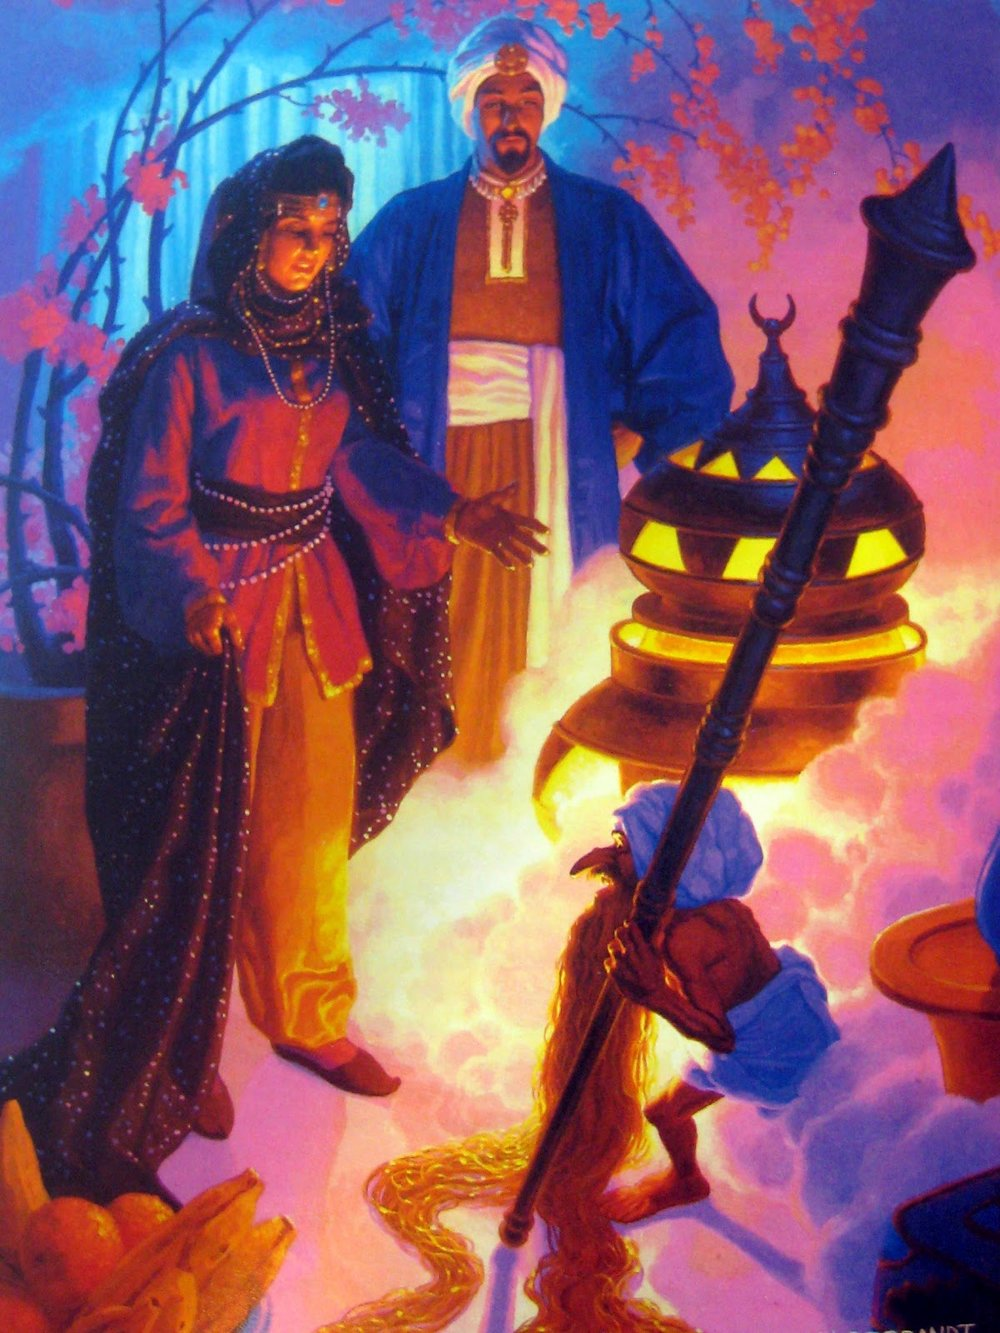 Paribanou and Schaibar by Greg Hildebrandt